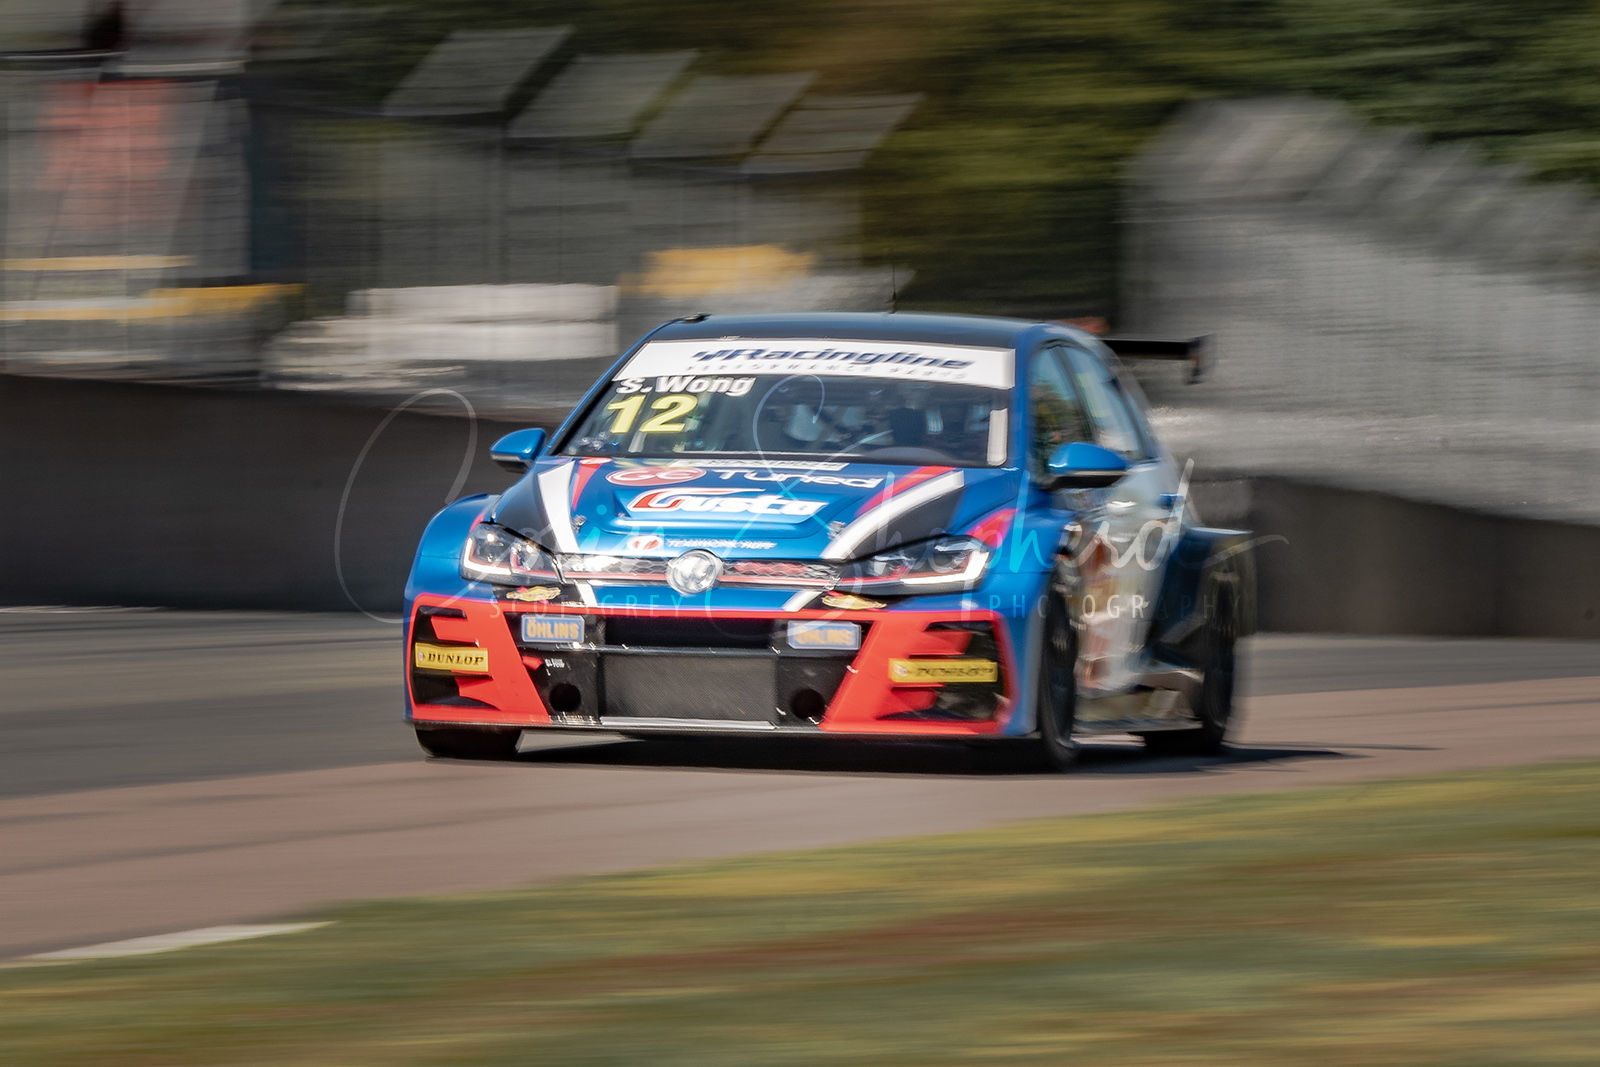 VW Golf GTI TCR - Sunny Wong - Teamwork Huff Motorsport